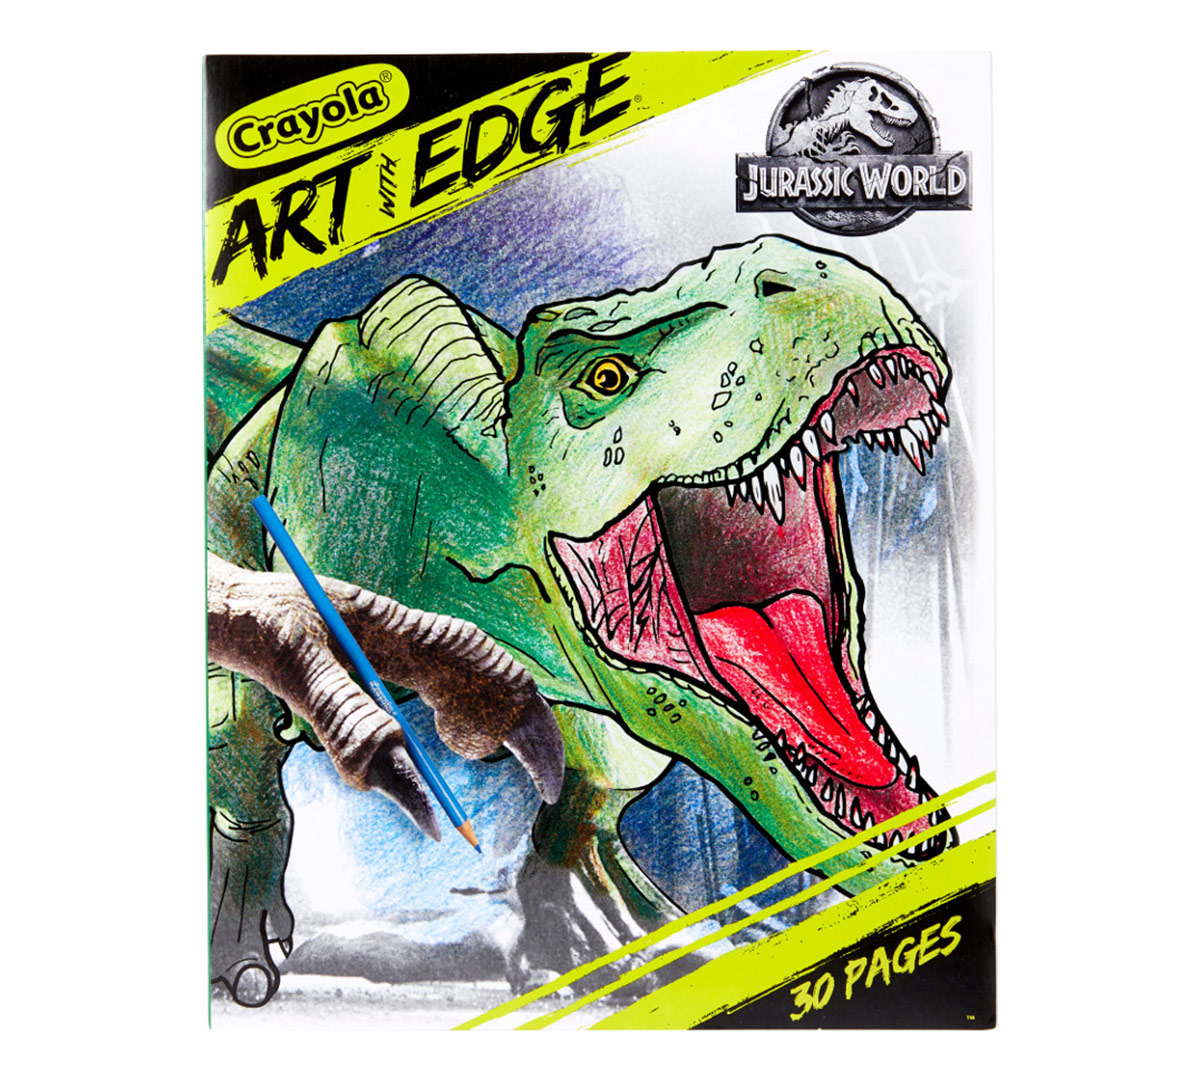 Crayola Art With Edge Coloring Pages Jurassic World Ii 30 Premium Coloring Pages Featuring Scenes And Dinosaurs From The Movie Crayola